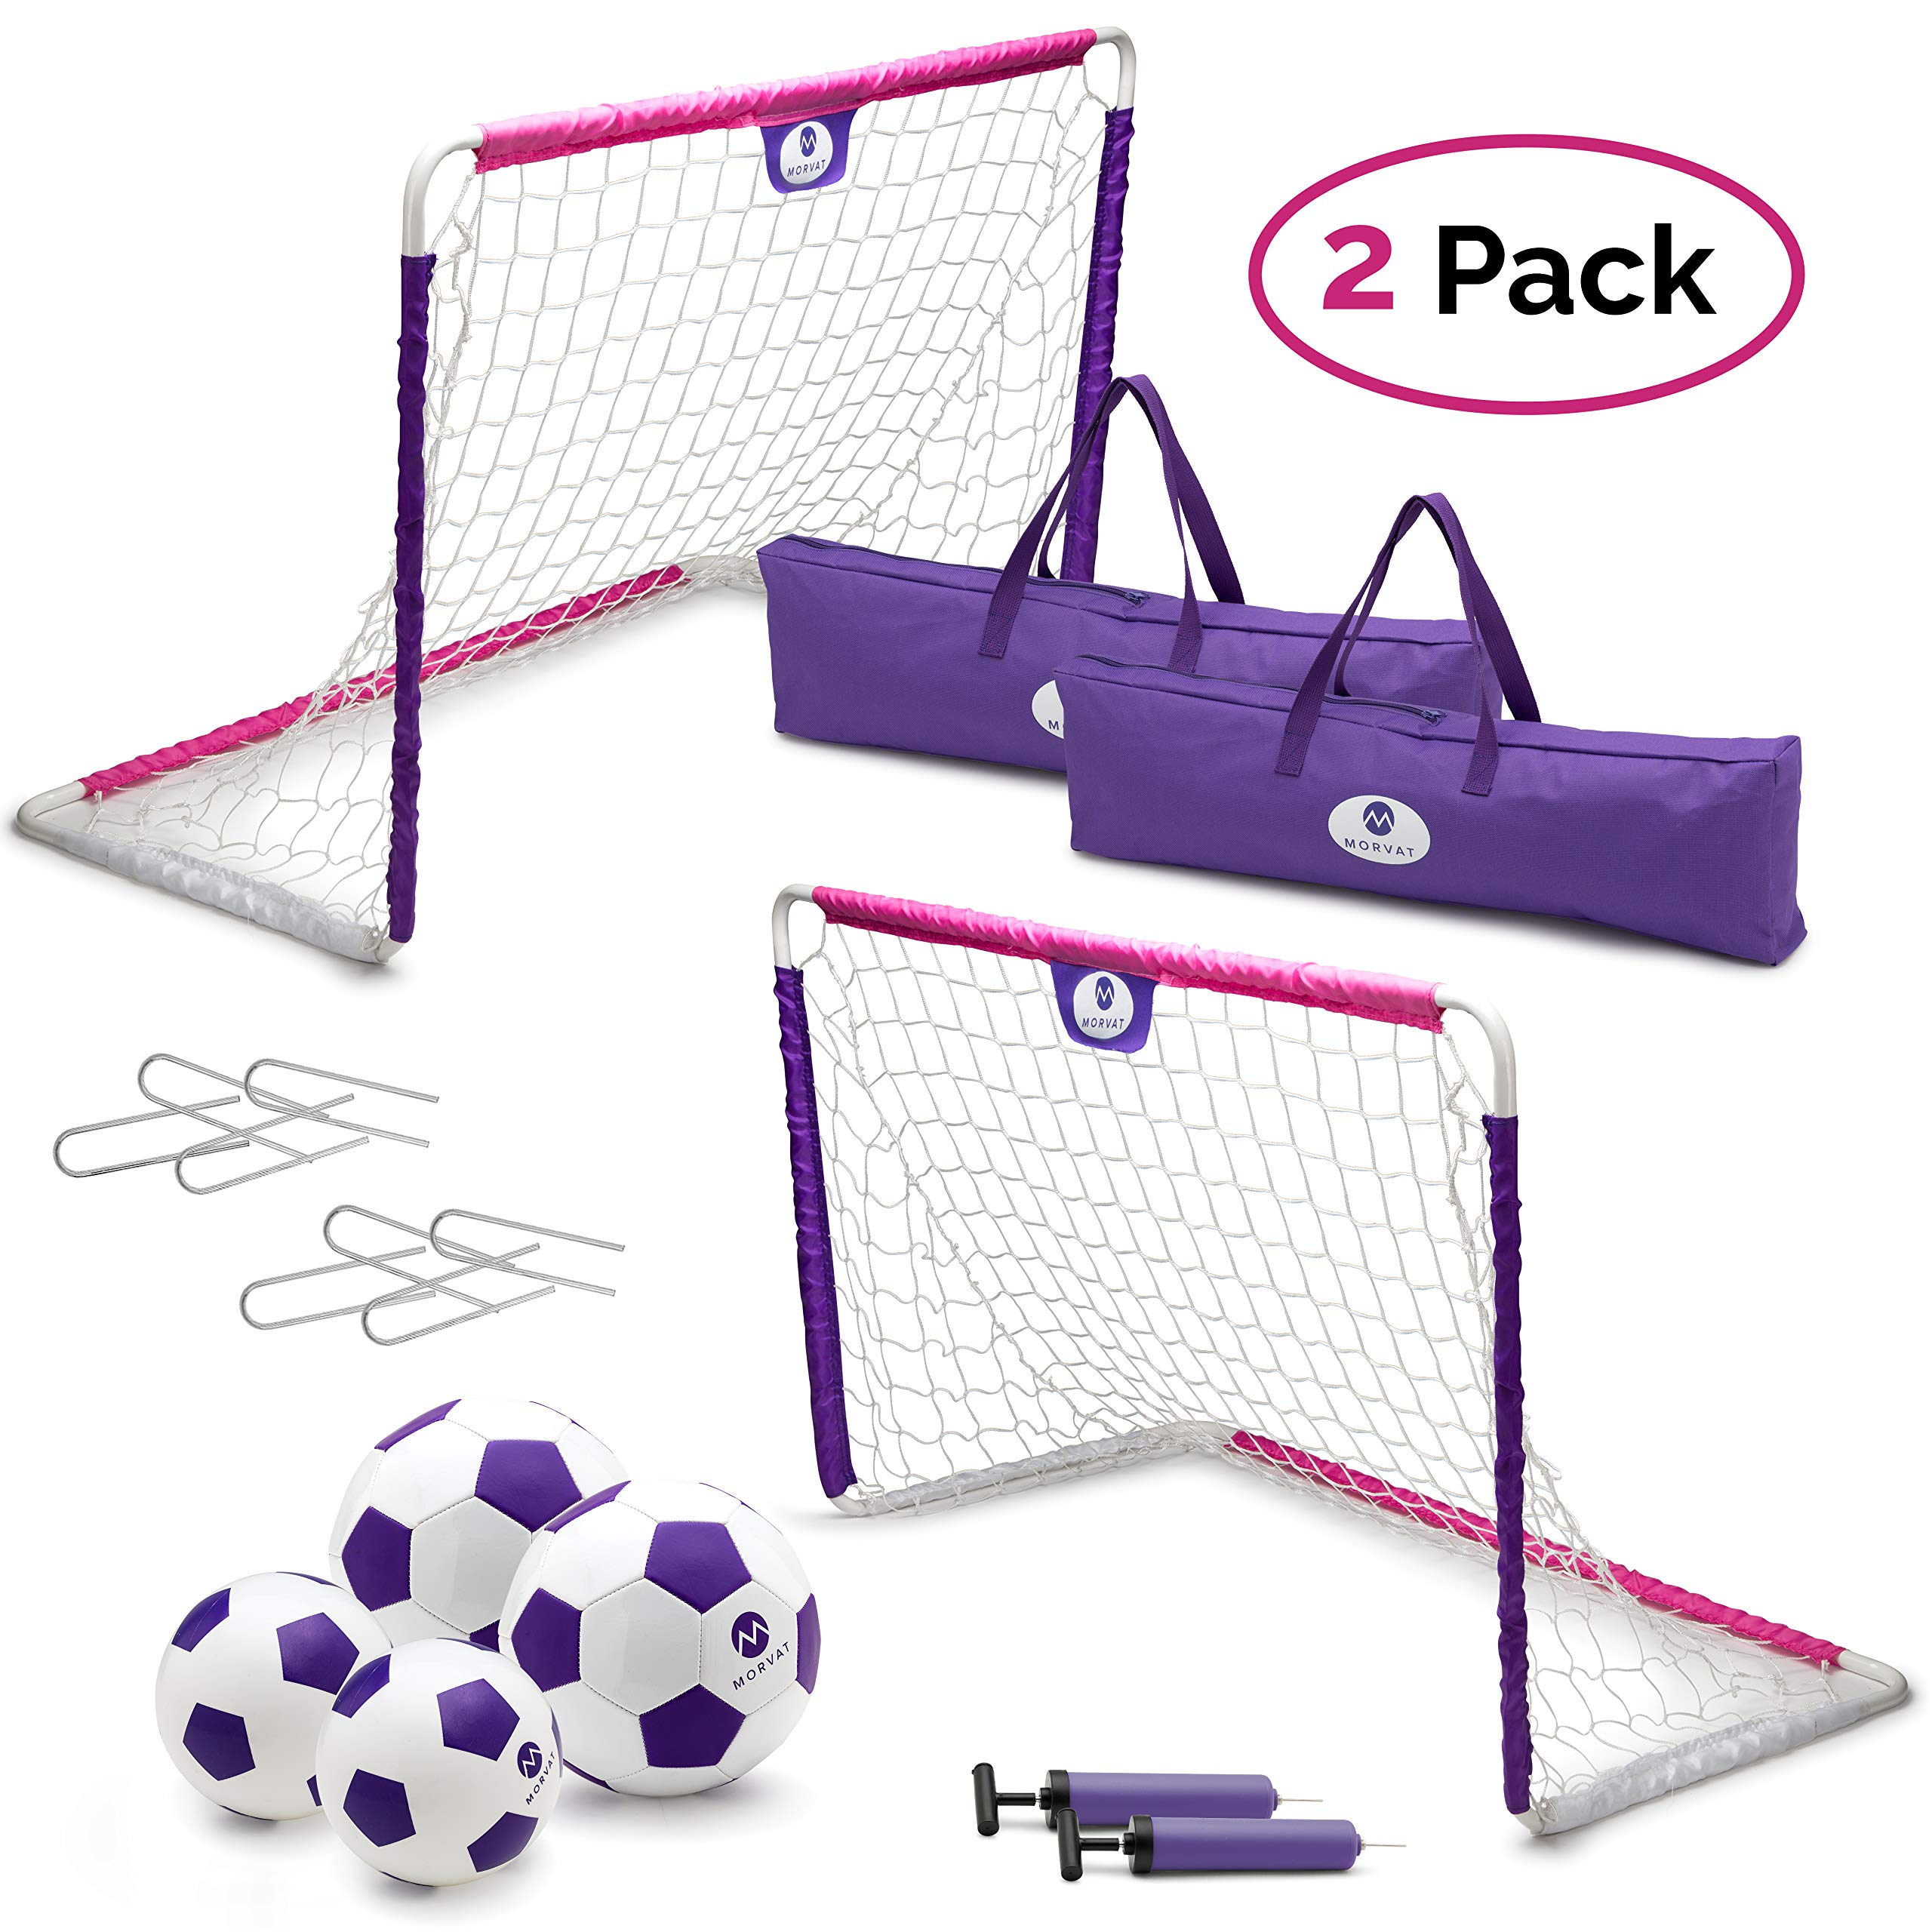 Morvat Soccer Goal Set for Backyard, Outdoor Games Soccer Net, Soccer Goals for Kids, Soccer Accessories, Pop Up Soccer Goals, Set of 2: Includes 2 Goal Nets, Soccer Balls, and More, Pink and Purple